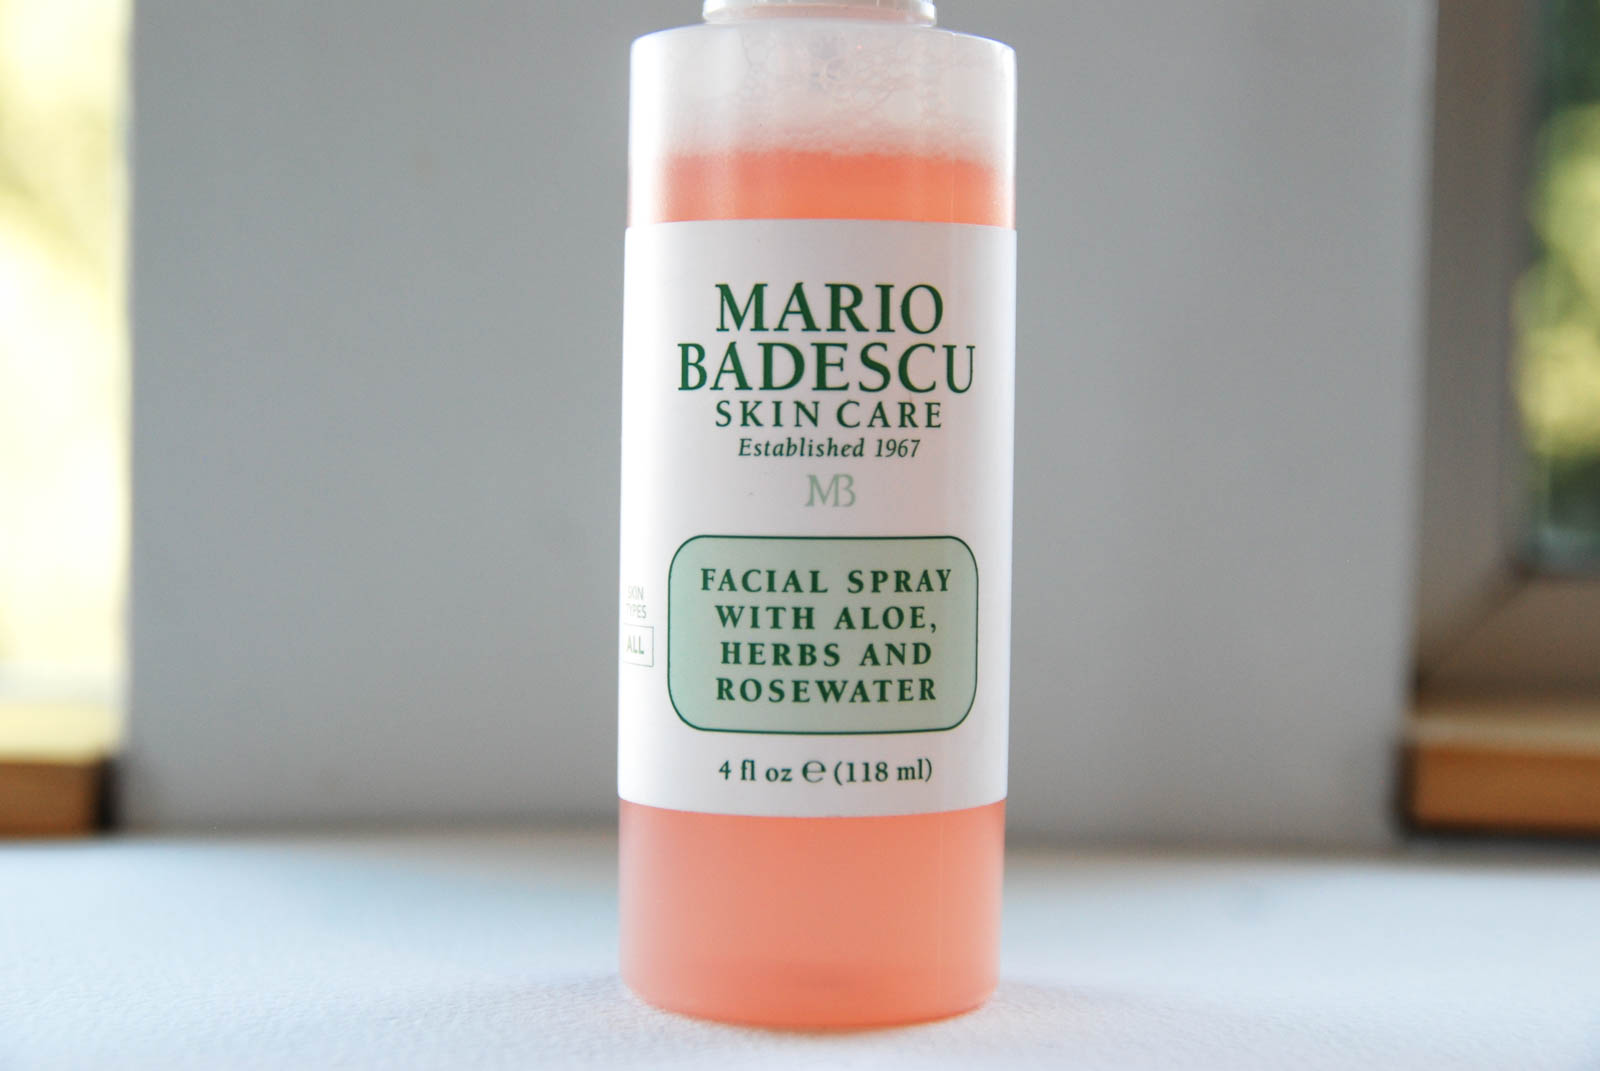 In Review Mario Badescu Facial Spray With Aloe Herbs And